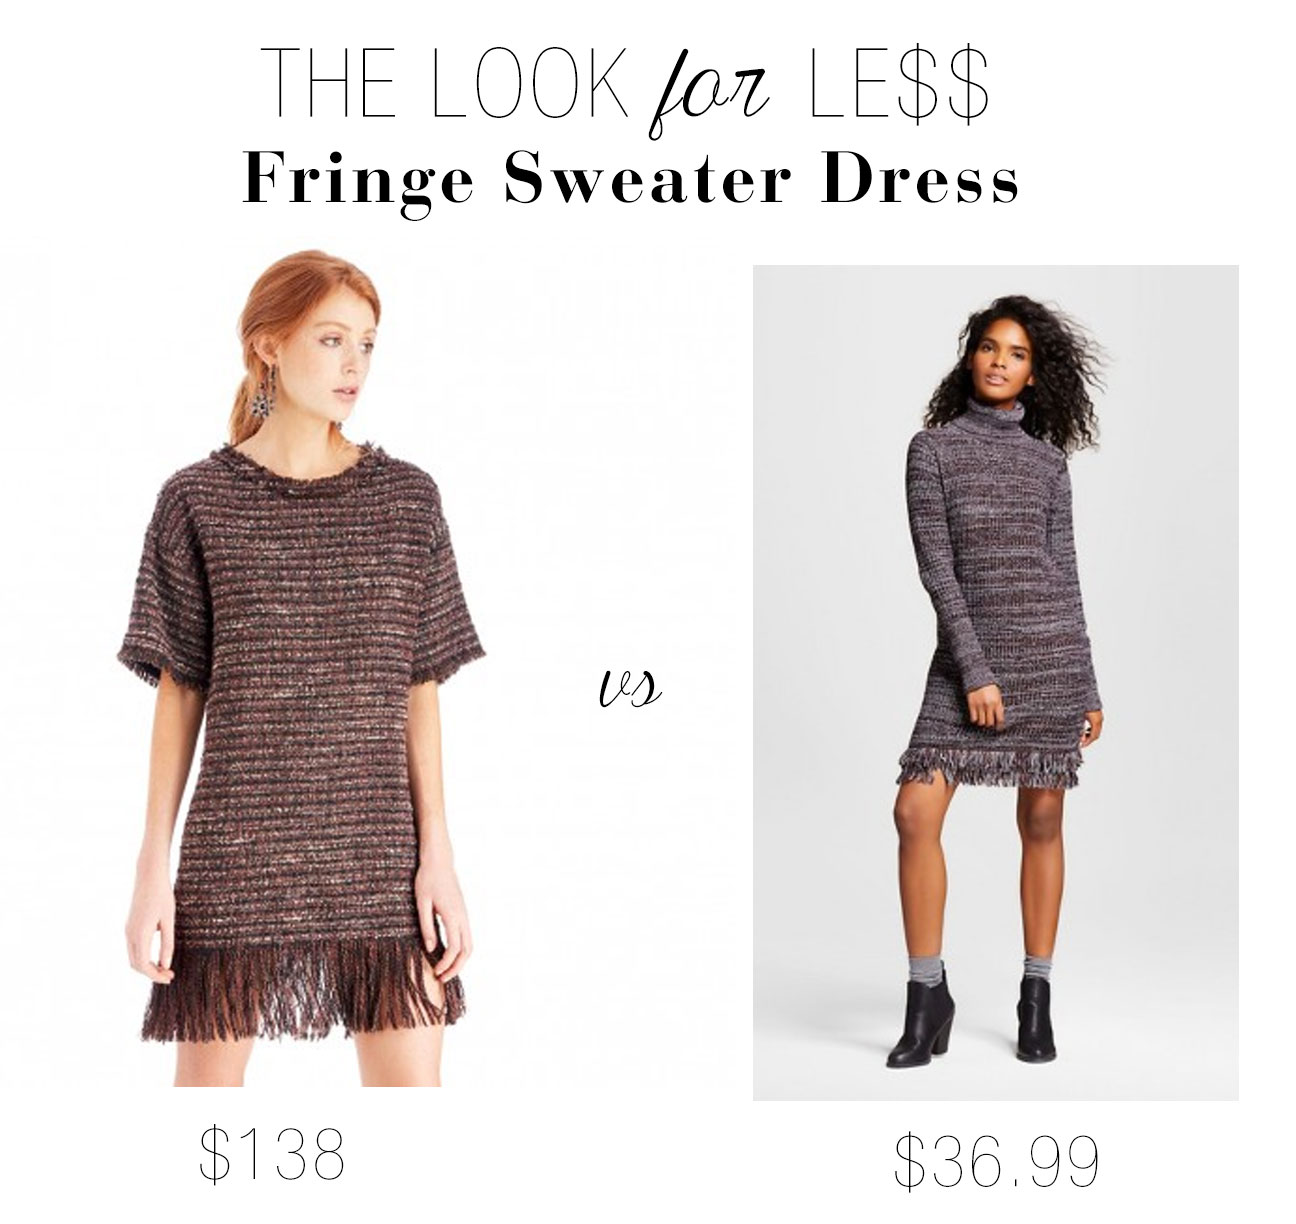 Try the fringe dress trend for less.